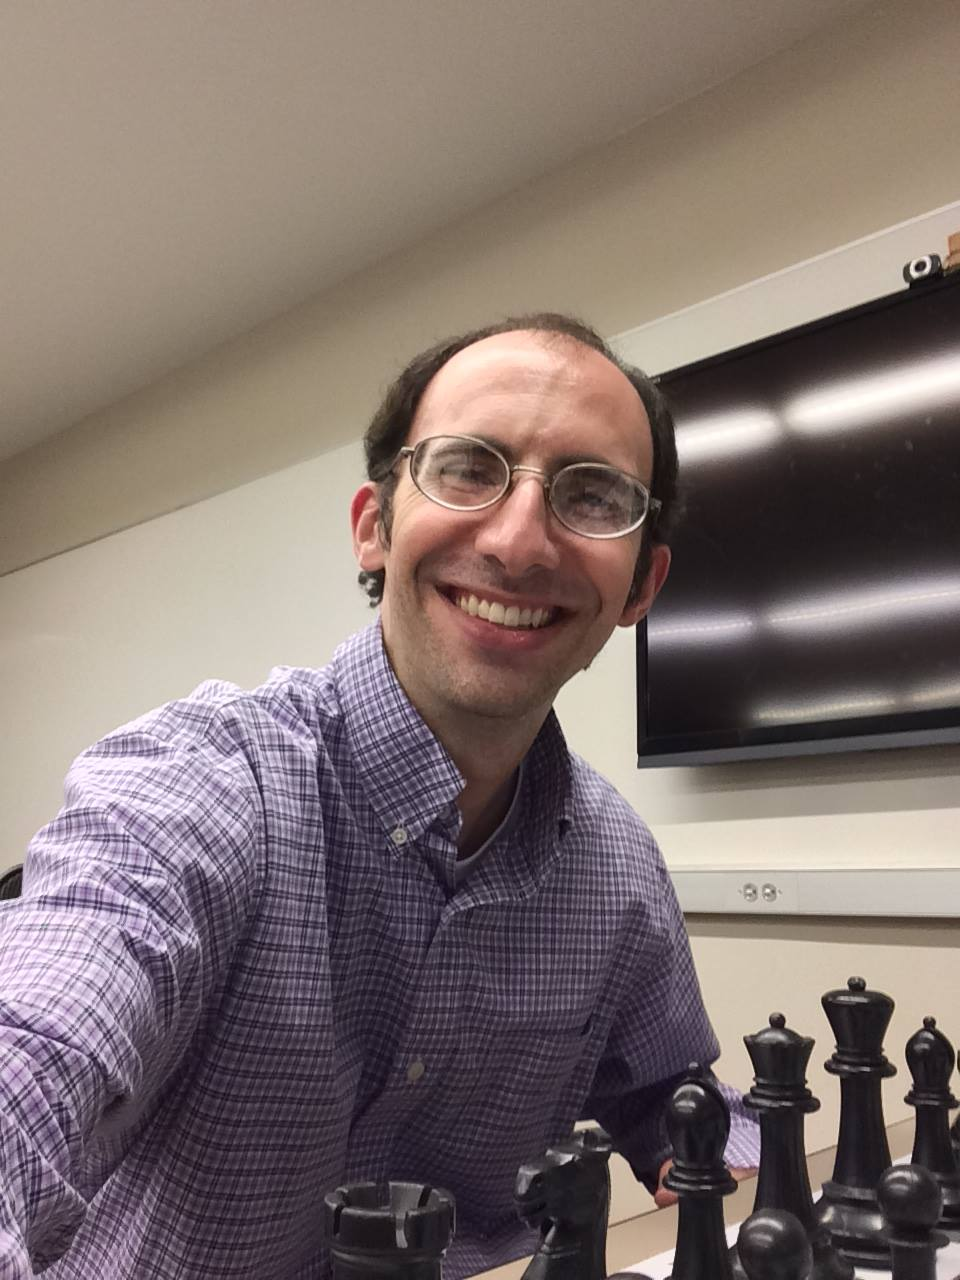 Our Gracious Tournament host and top seed Scott Varagona. Photo Credit: Umm...Scott Varagona...